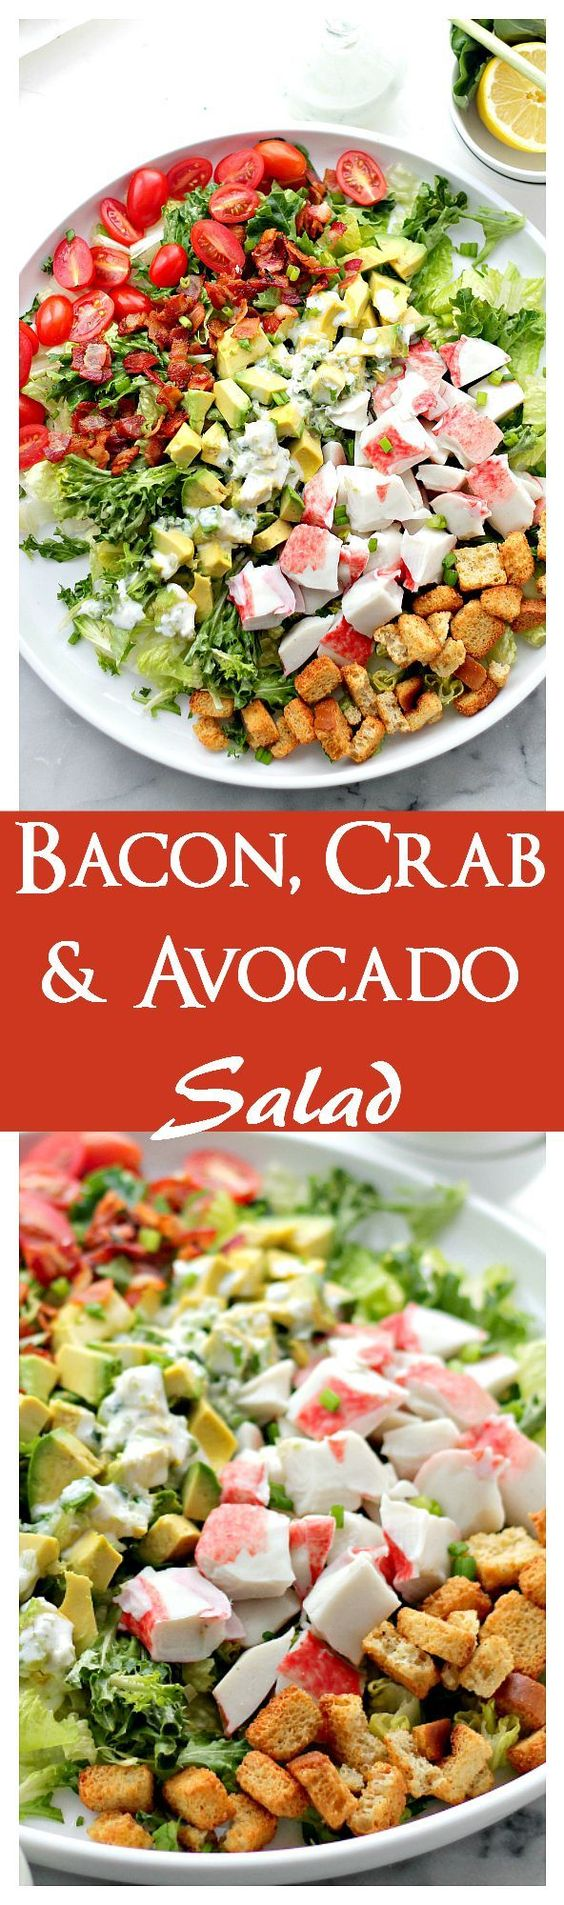 Bacon, Crab and Avocado Salad   www.diethood.com   A refreshing and delicious salad with a mix of crab meat, avocados and bacon tossed in a homemade Green Onion Yogurt Salad Dressing.